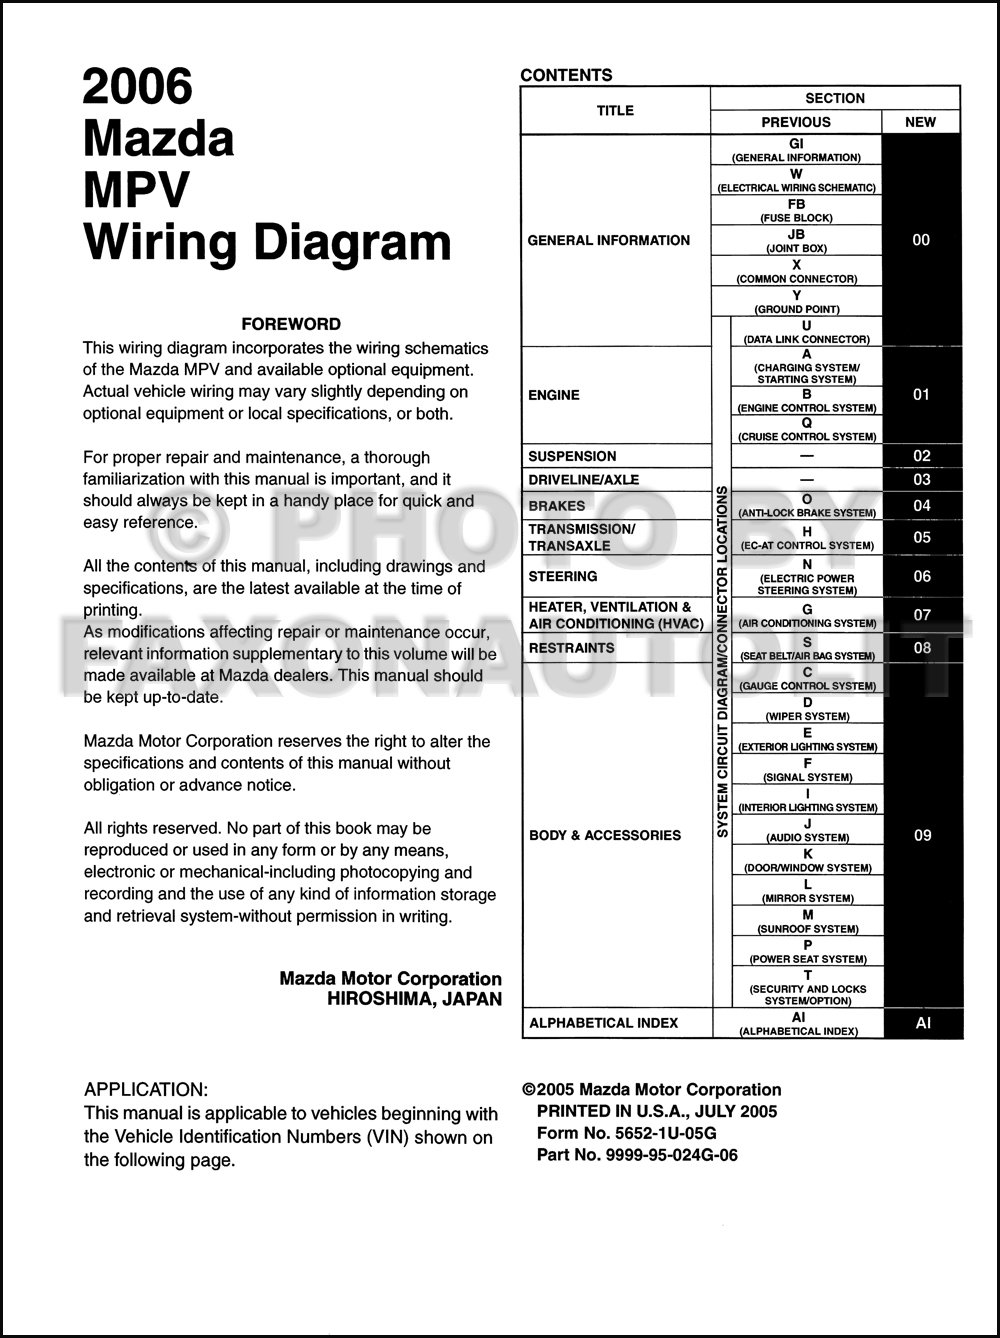 2004 mazda mpv wiring diagram data wiring diagrams 2006 mazda mpv wiring diagram manual original rh faxonautoliterature com 2004 mazda mpv radio wiring diagram cheapraybanclubmaster Image collections